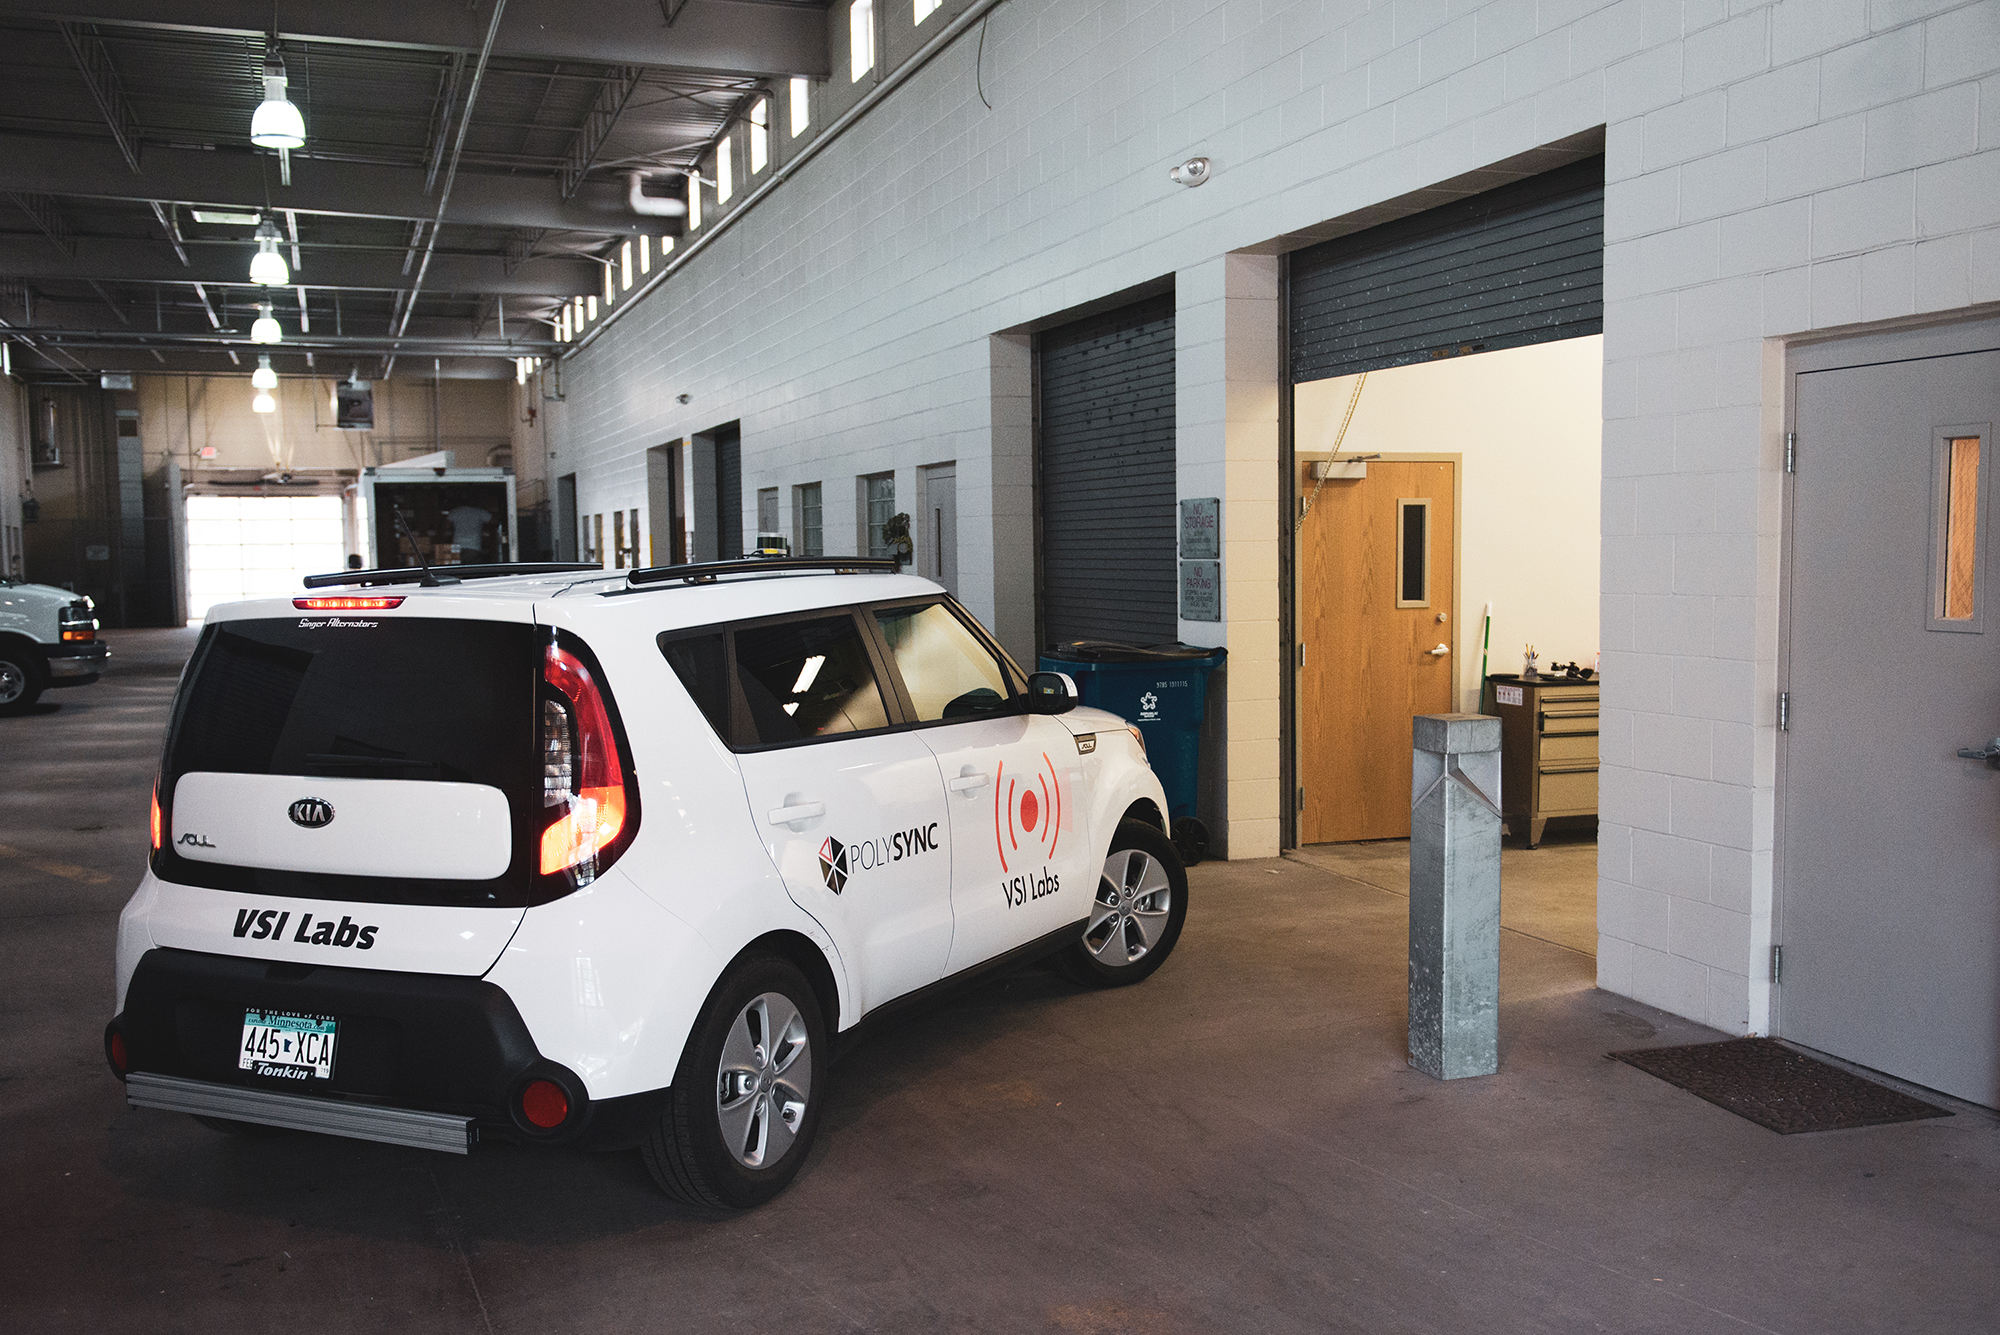 PolySync-enabled vehicle at VSI's laboratory in St. Louis Park, MN.